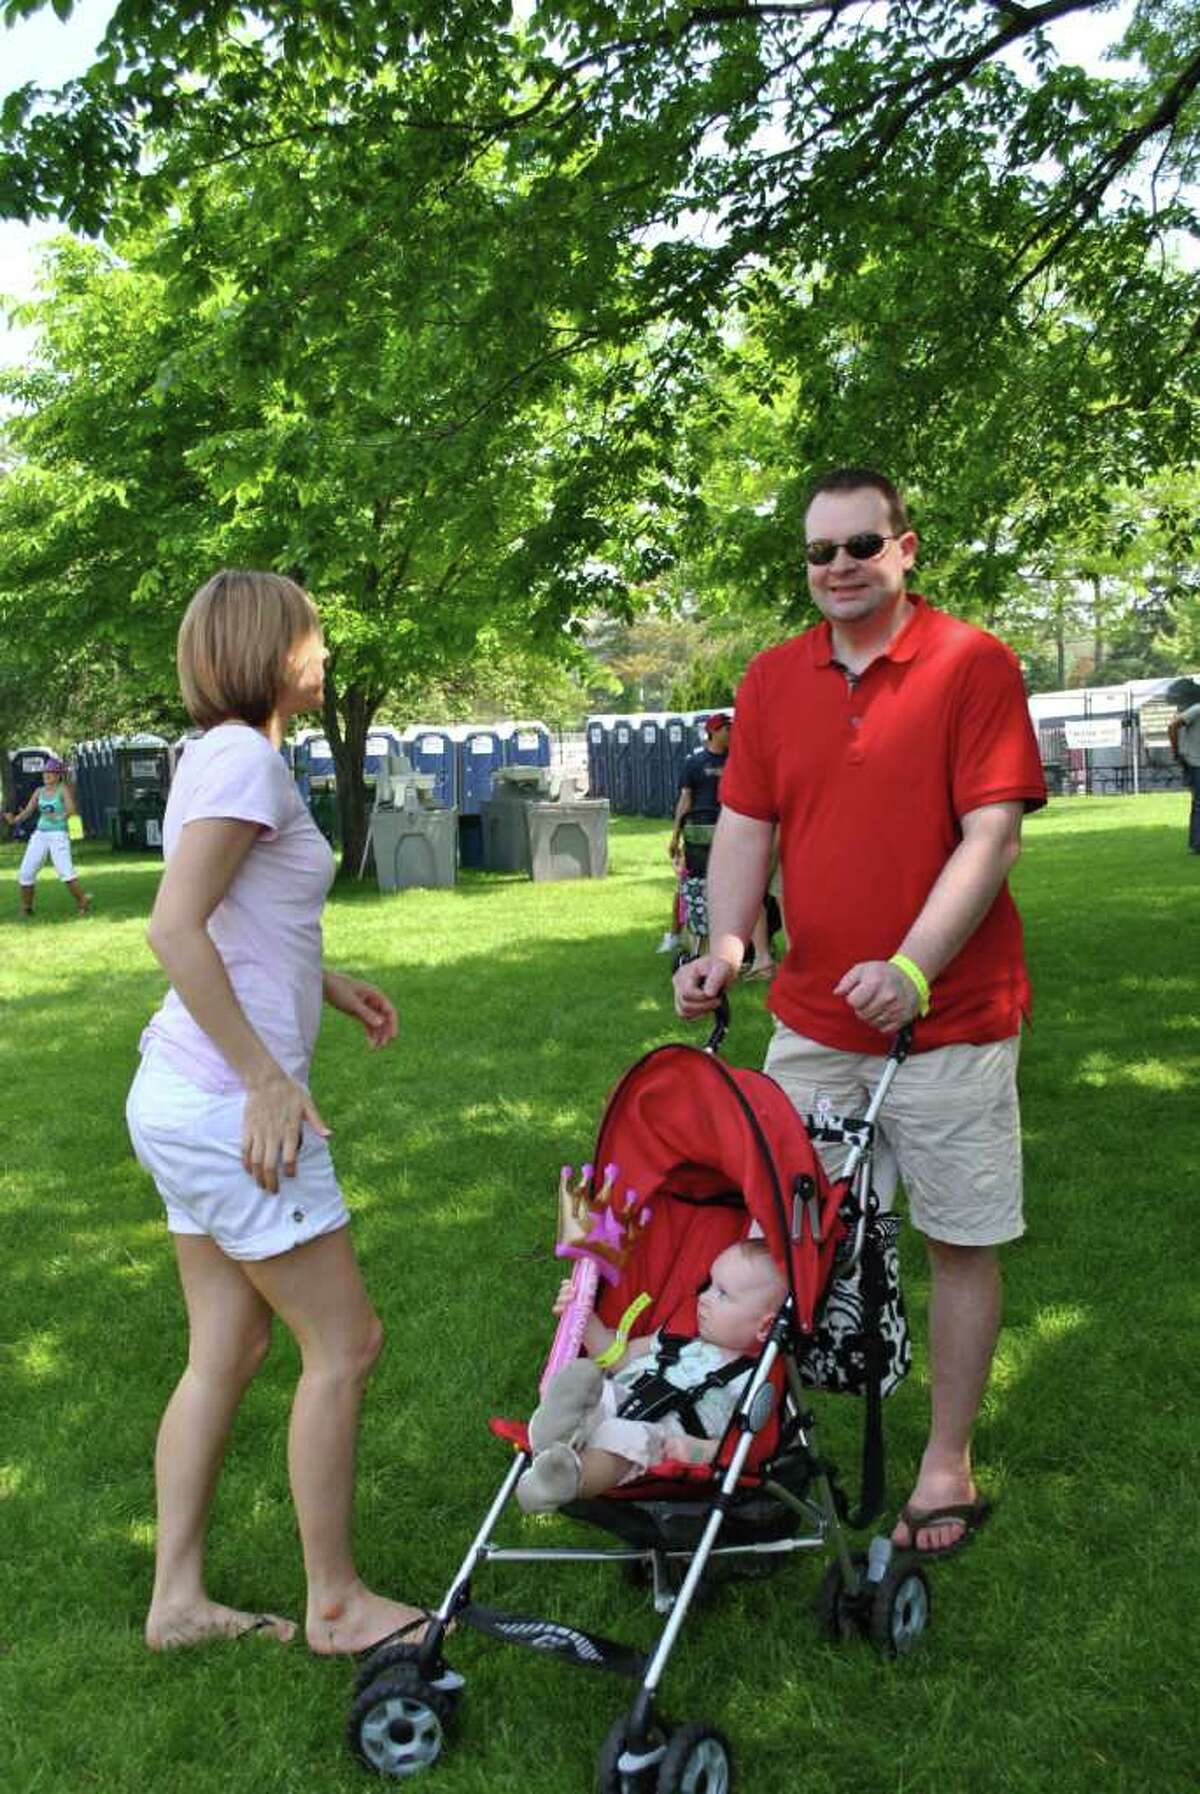 The Greenwich Town Party was on May 28, 2011 at Roger Sherman Baldwin Park in Greenwich.